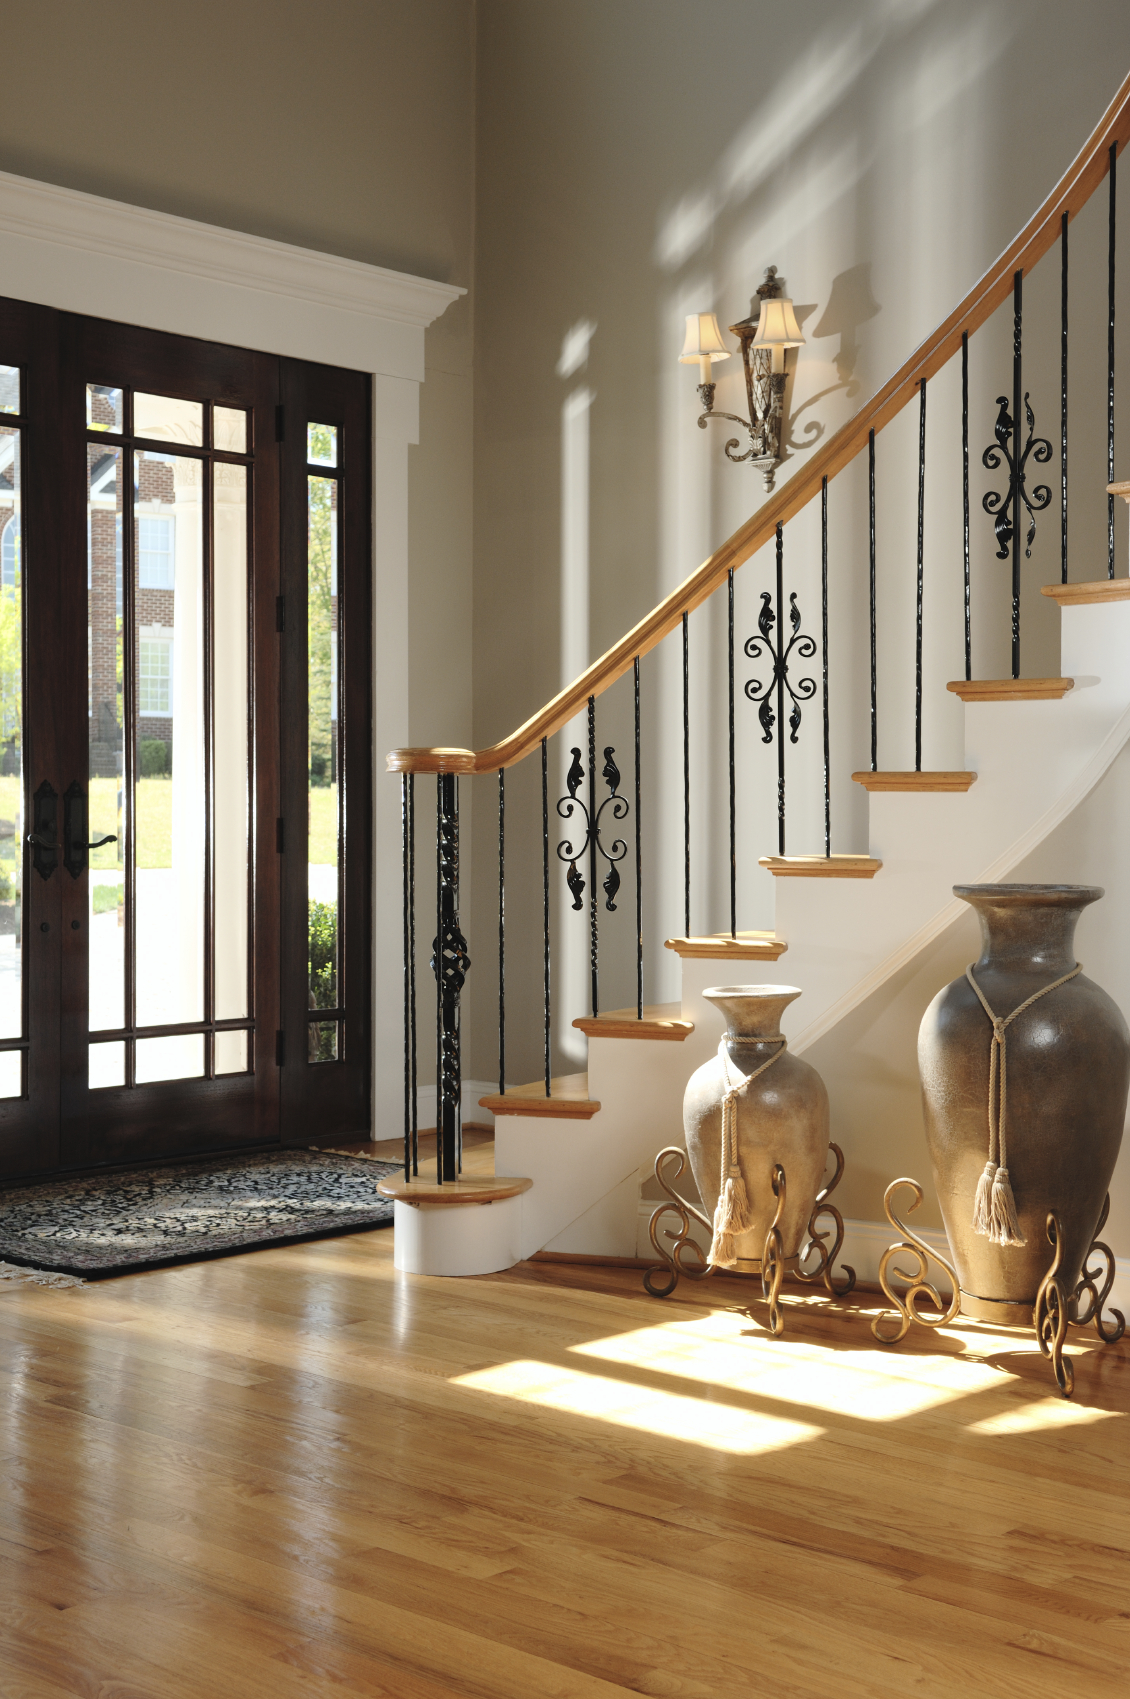 46 beautiful entrance hall designs and ideas pictures for Beautiful home entrance design